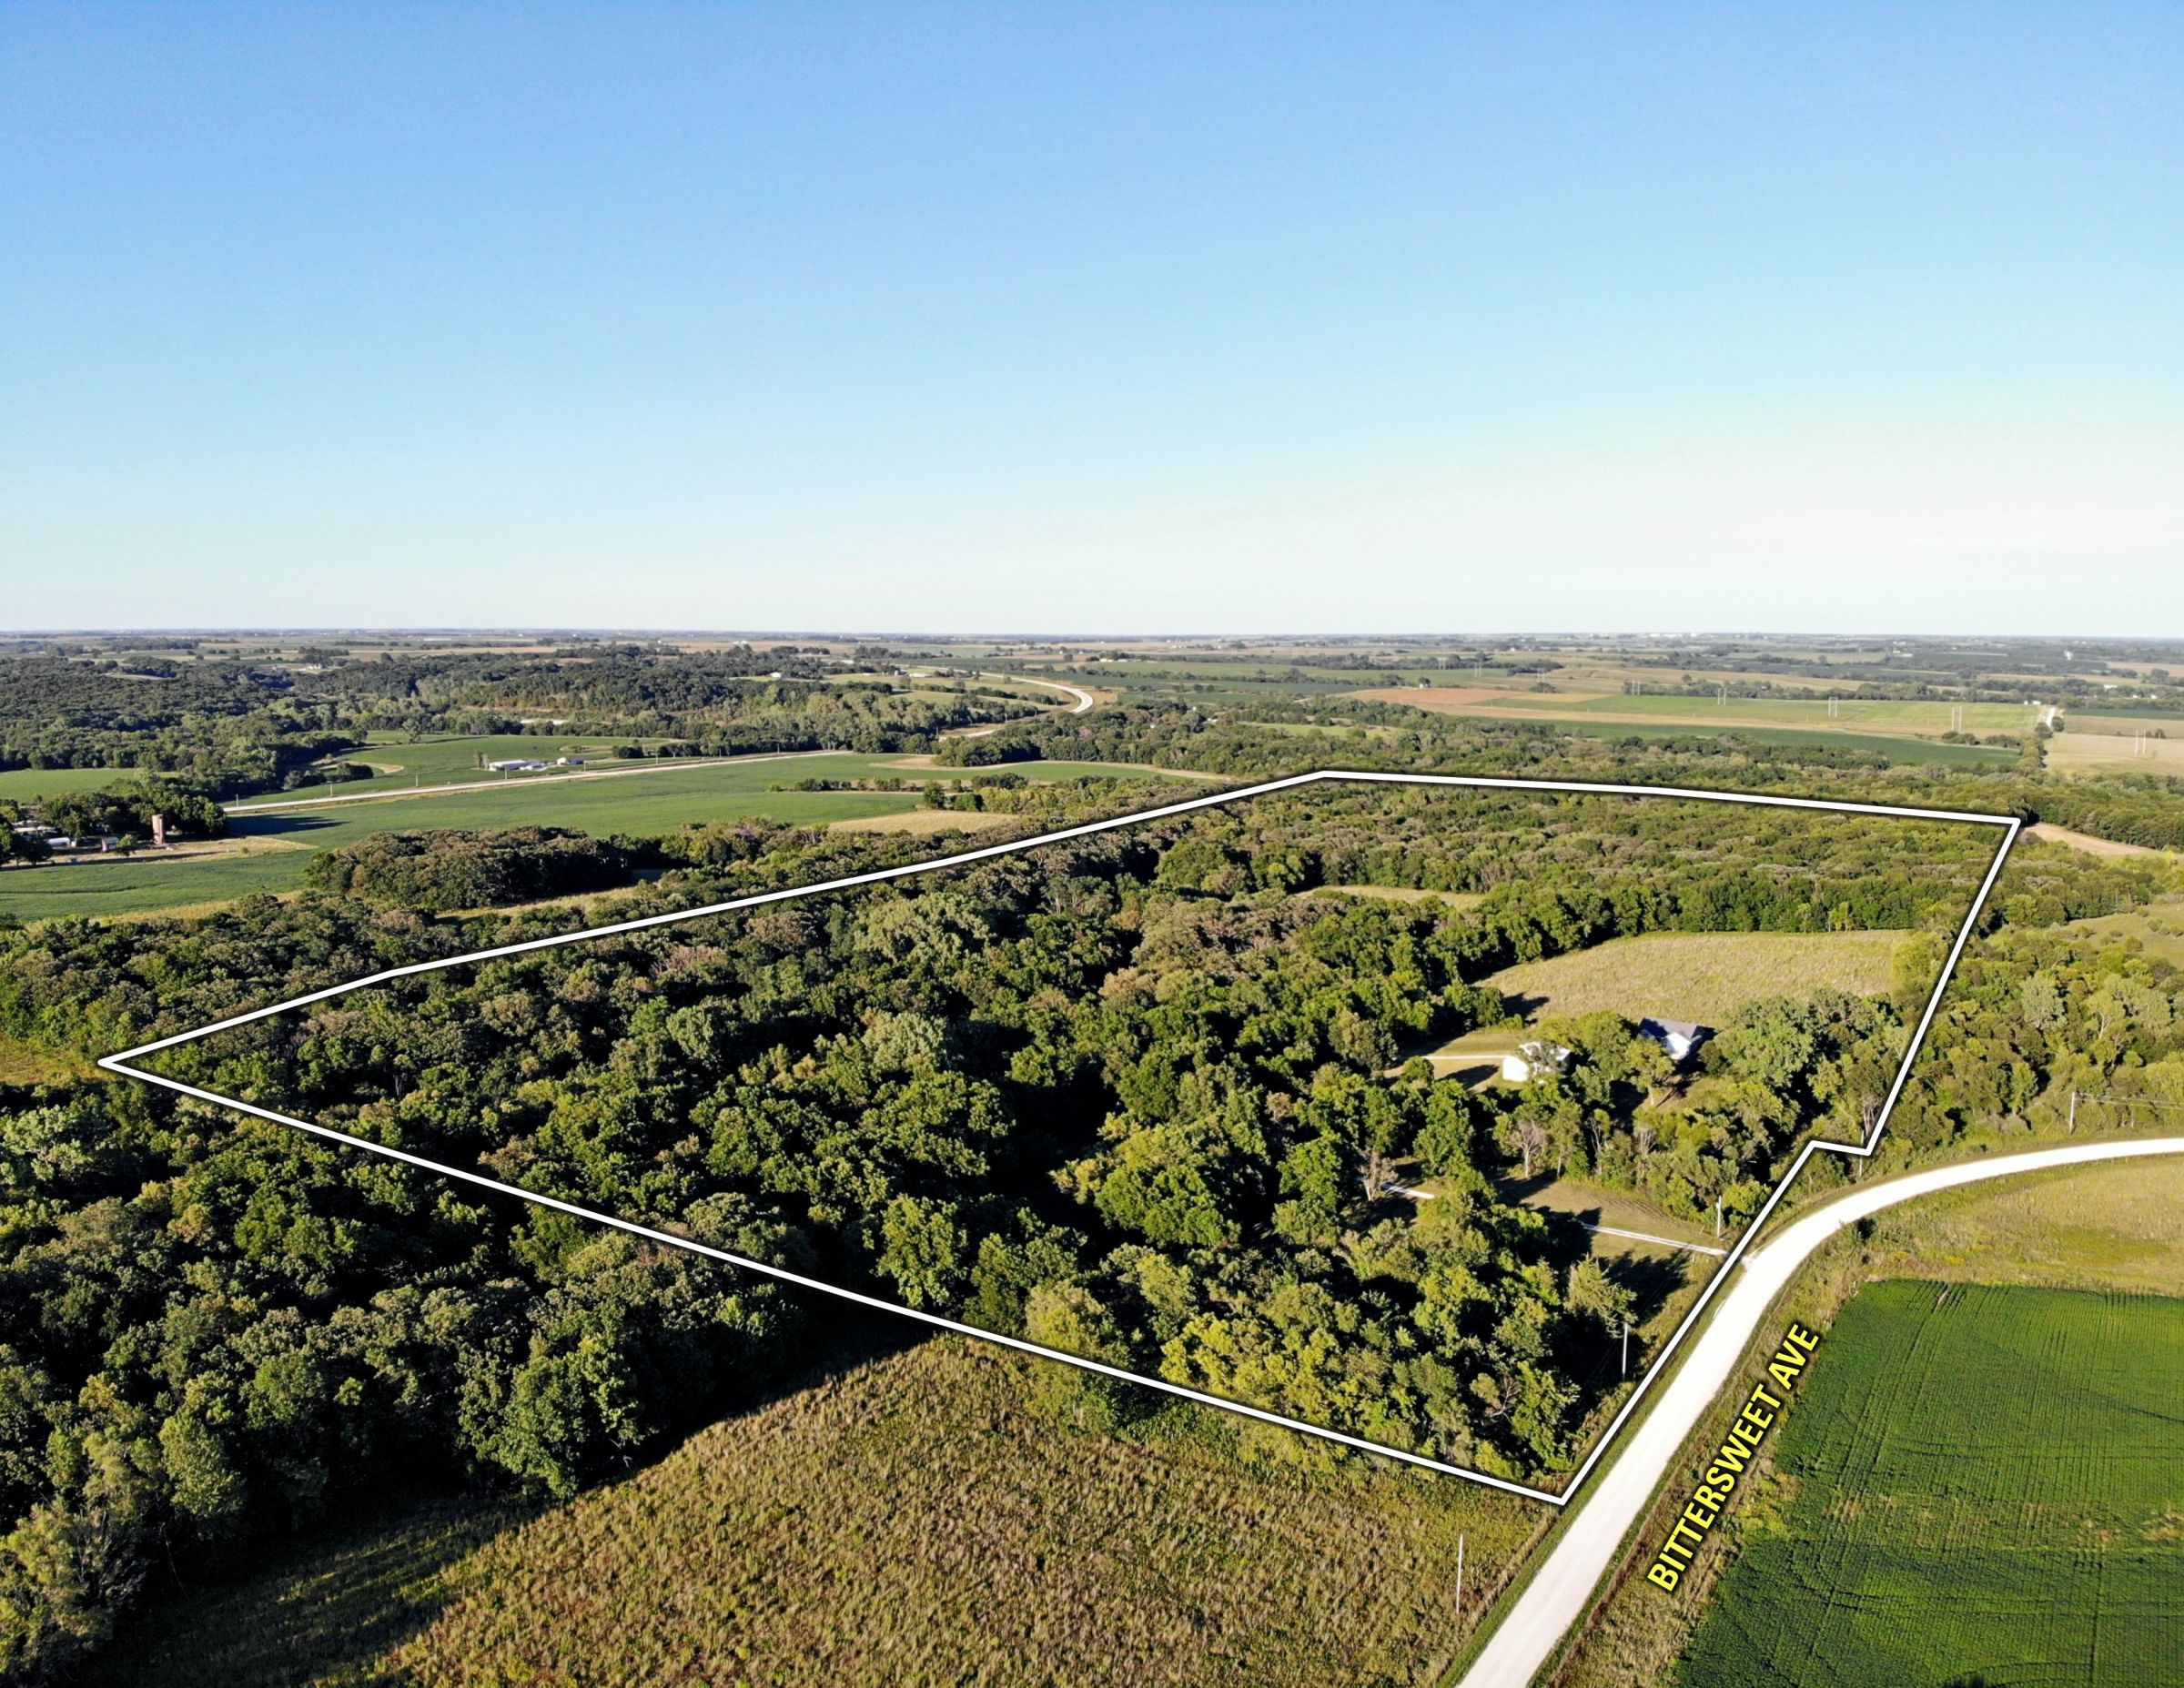 residential-land-madison-county-iowa-106-acres-listing-number-15123-0-2020-08-24-163900.JPG